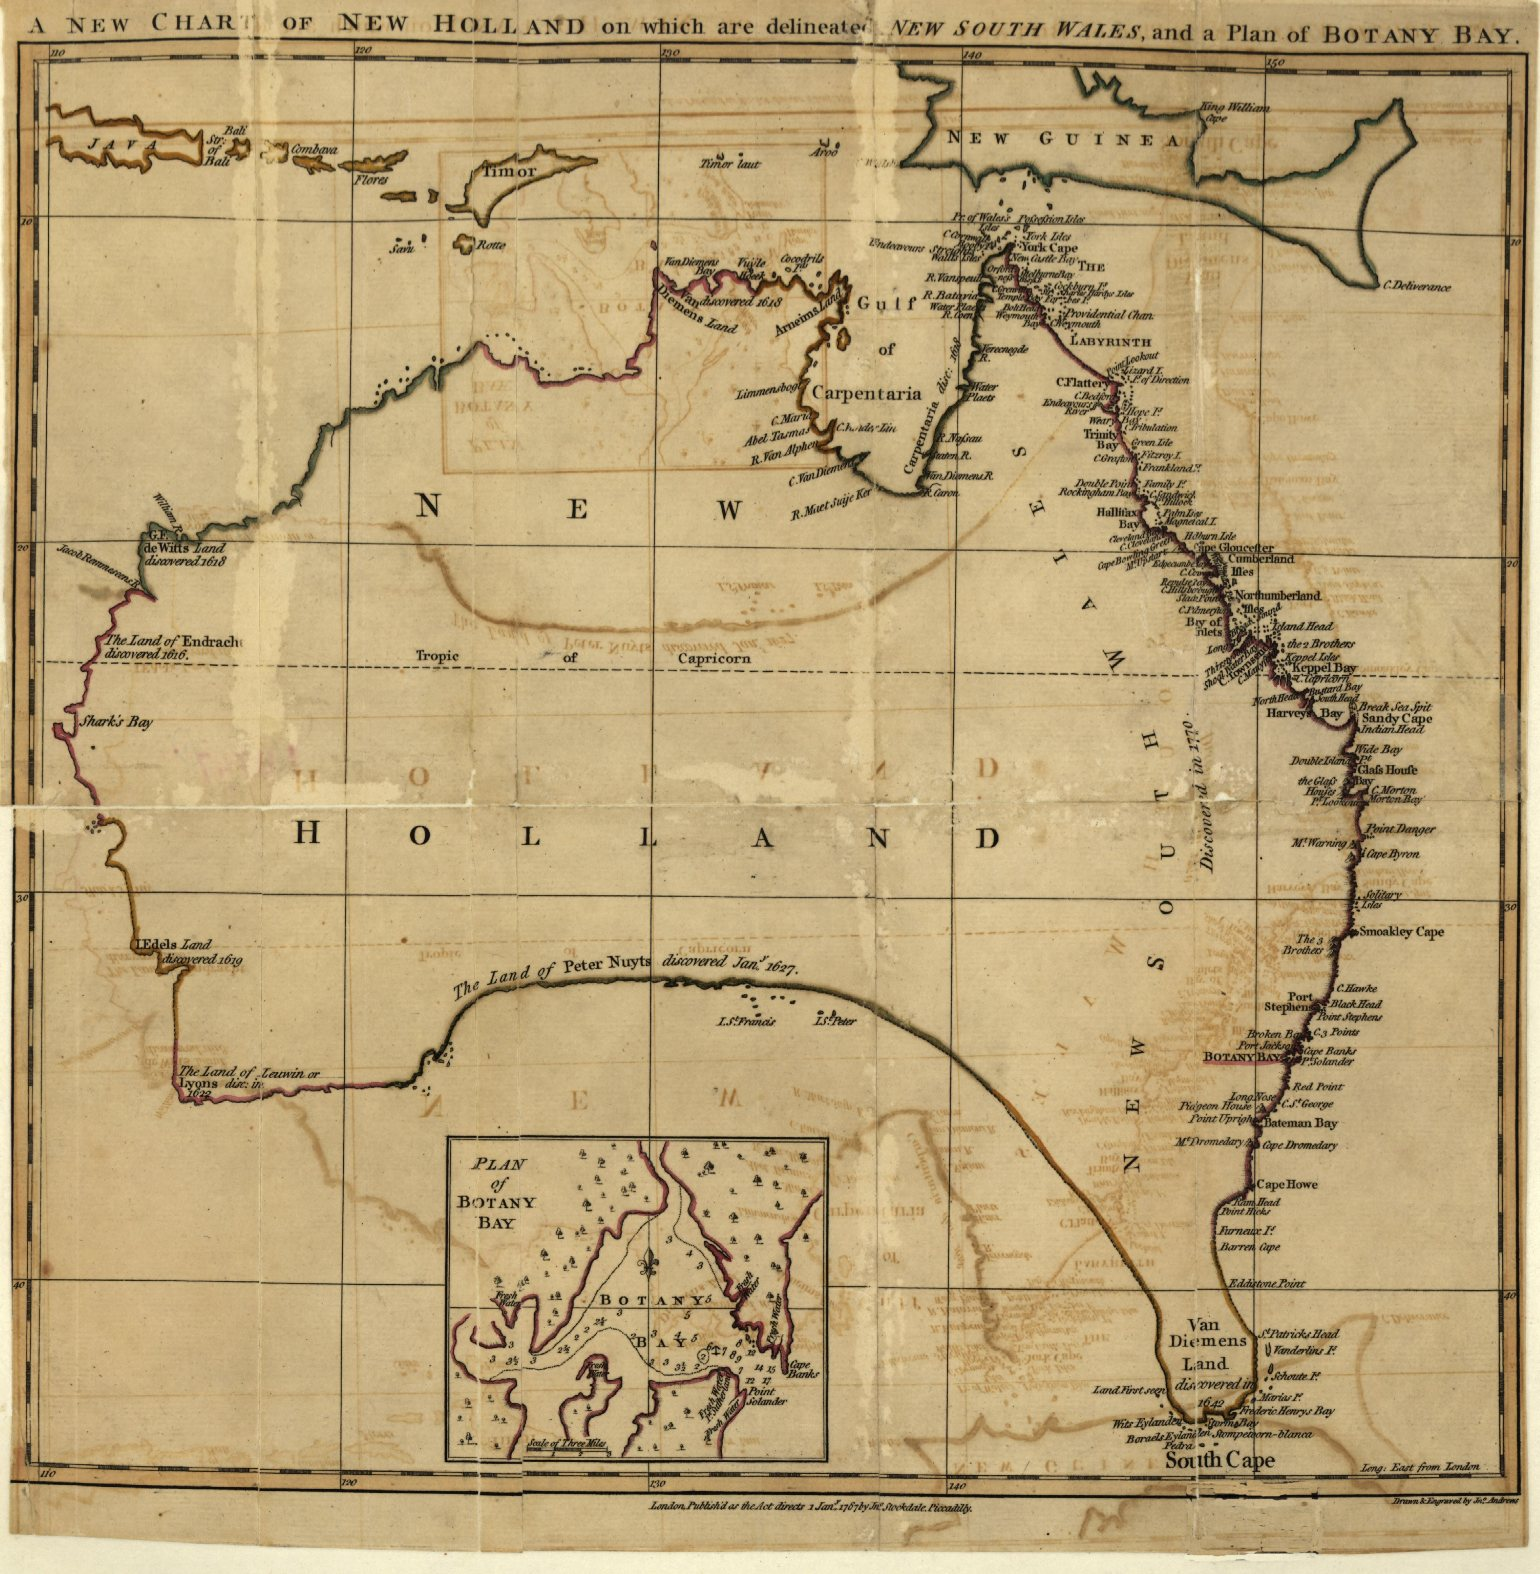 cooks map of the east coast of new south wales 1770